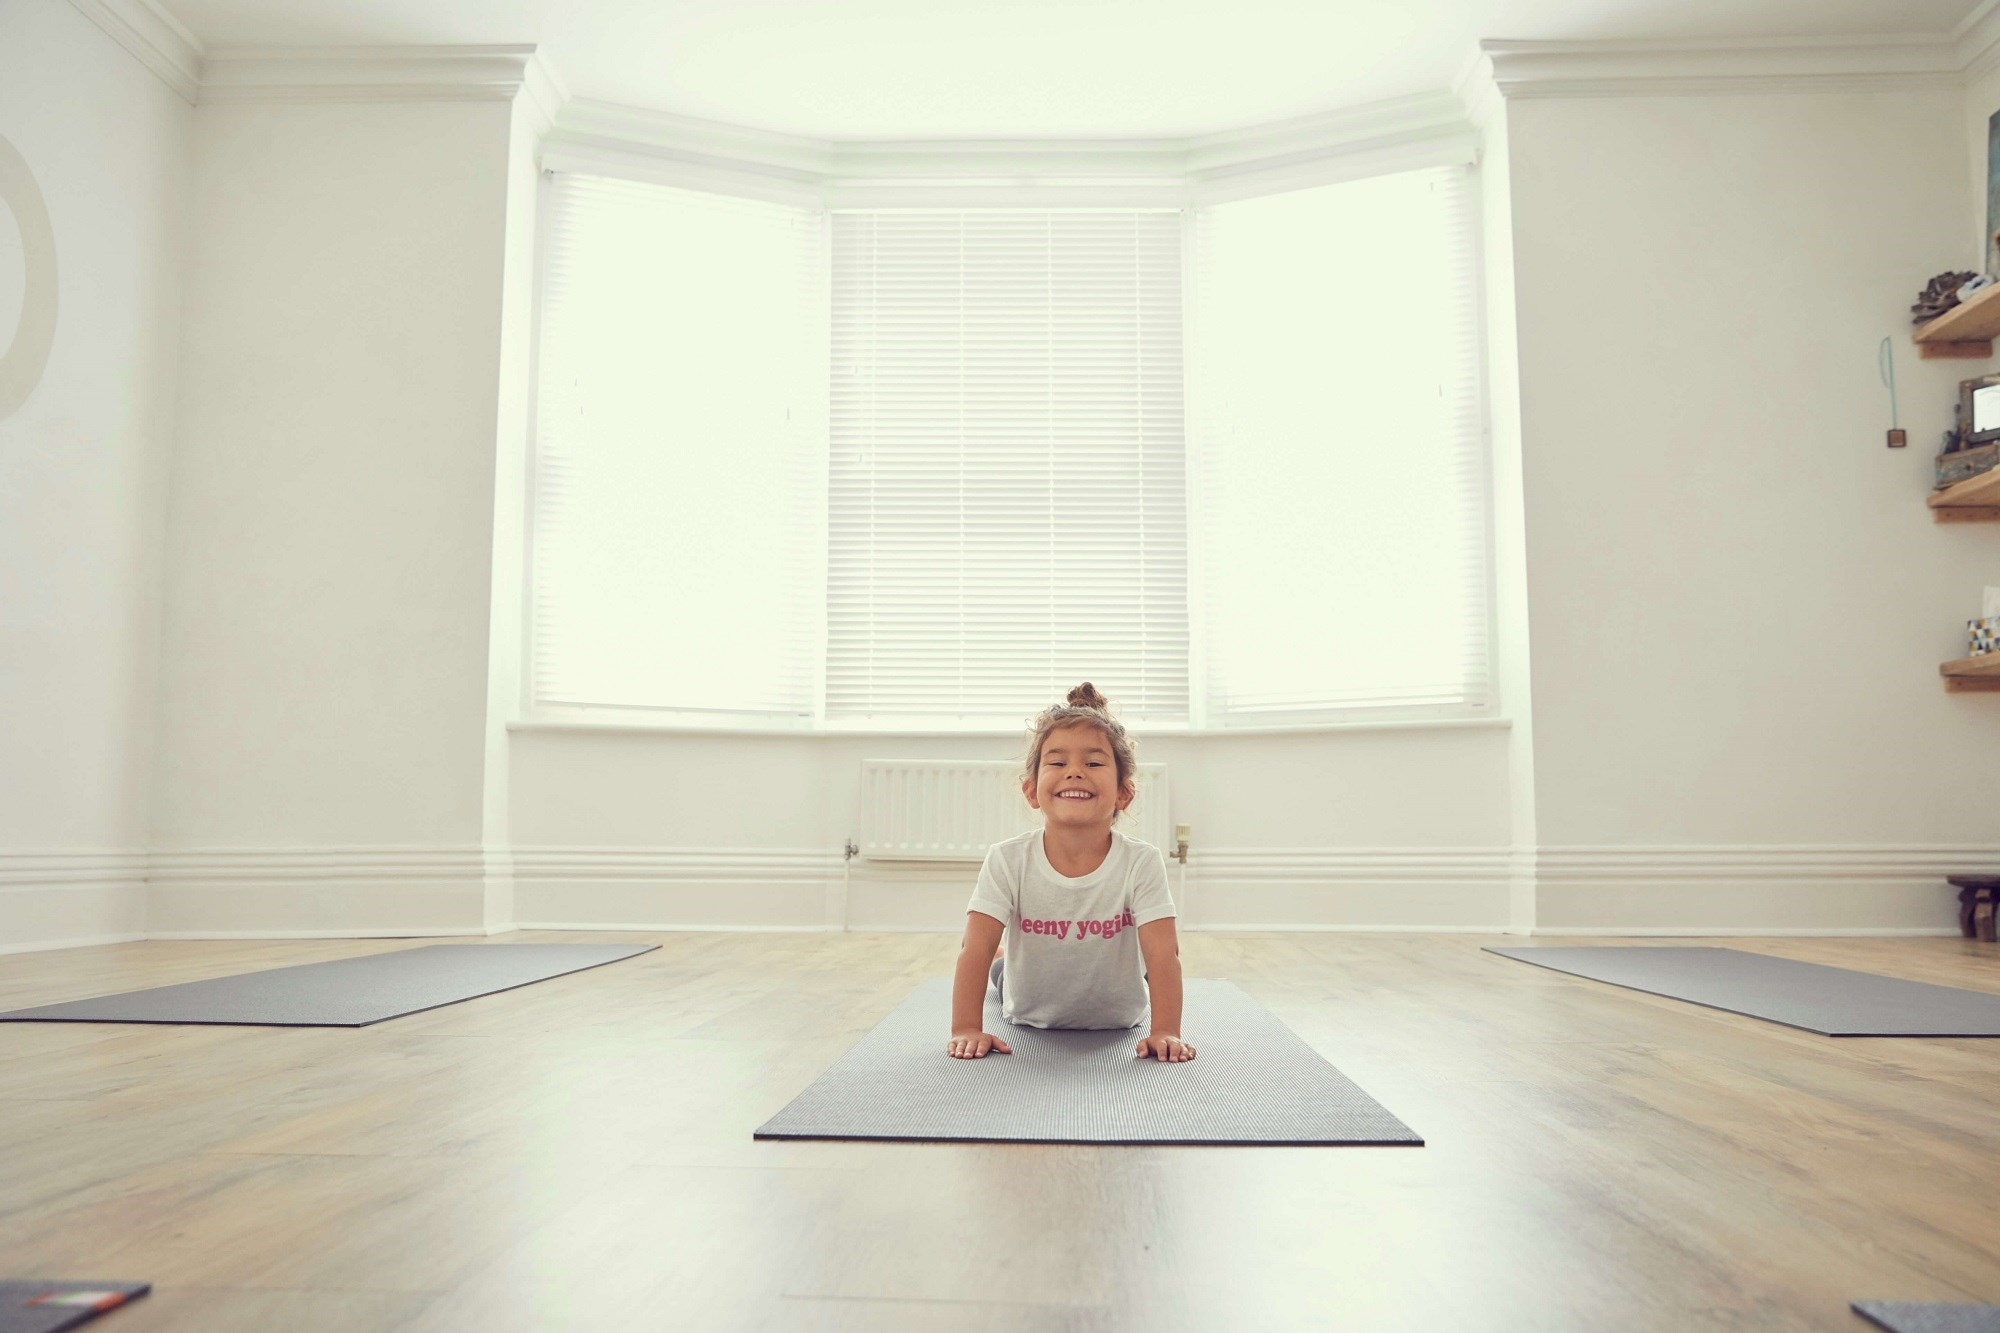 The researchers found that from 2012 to 2017, there was an increase in the use of yoga (from 3.1% to 8.4%) and meditation (from 0.6% to 5.4%) during the previous 12 months.